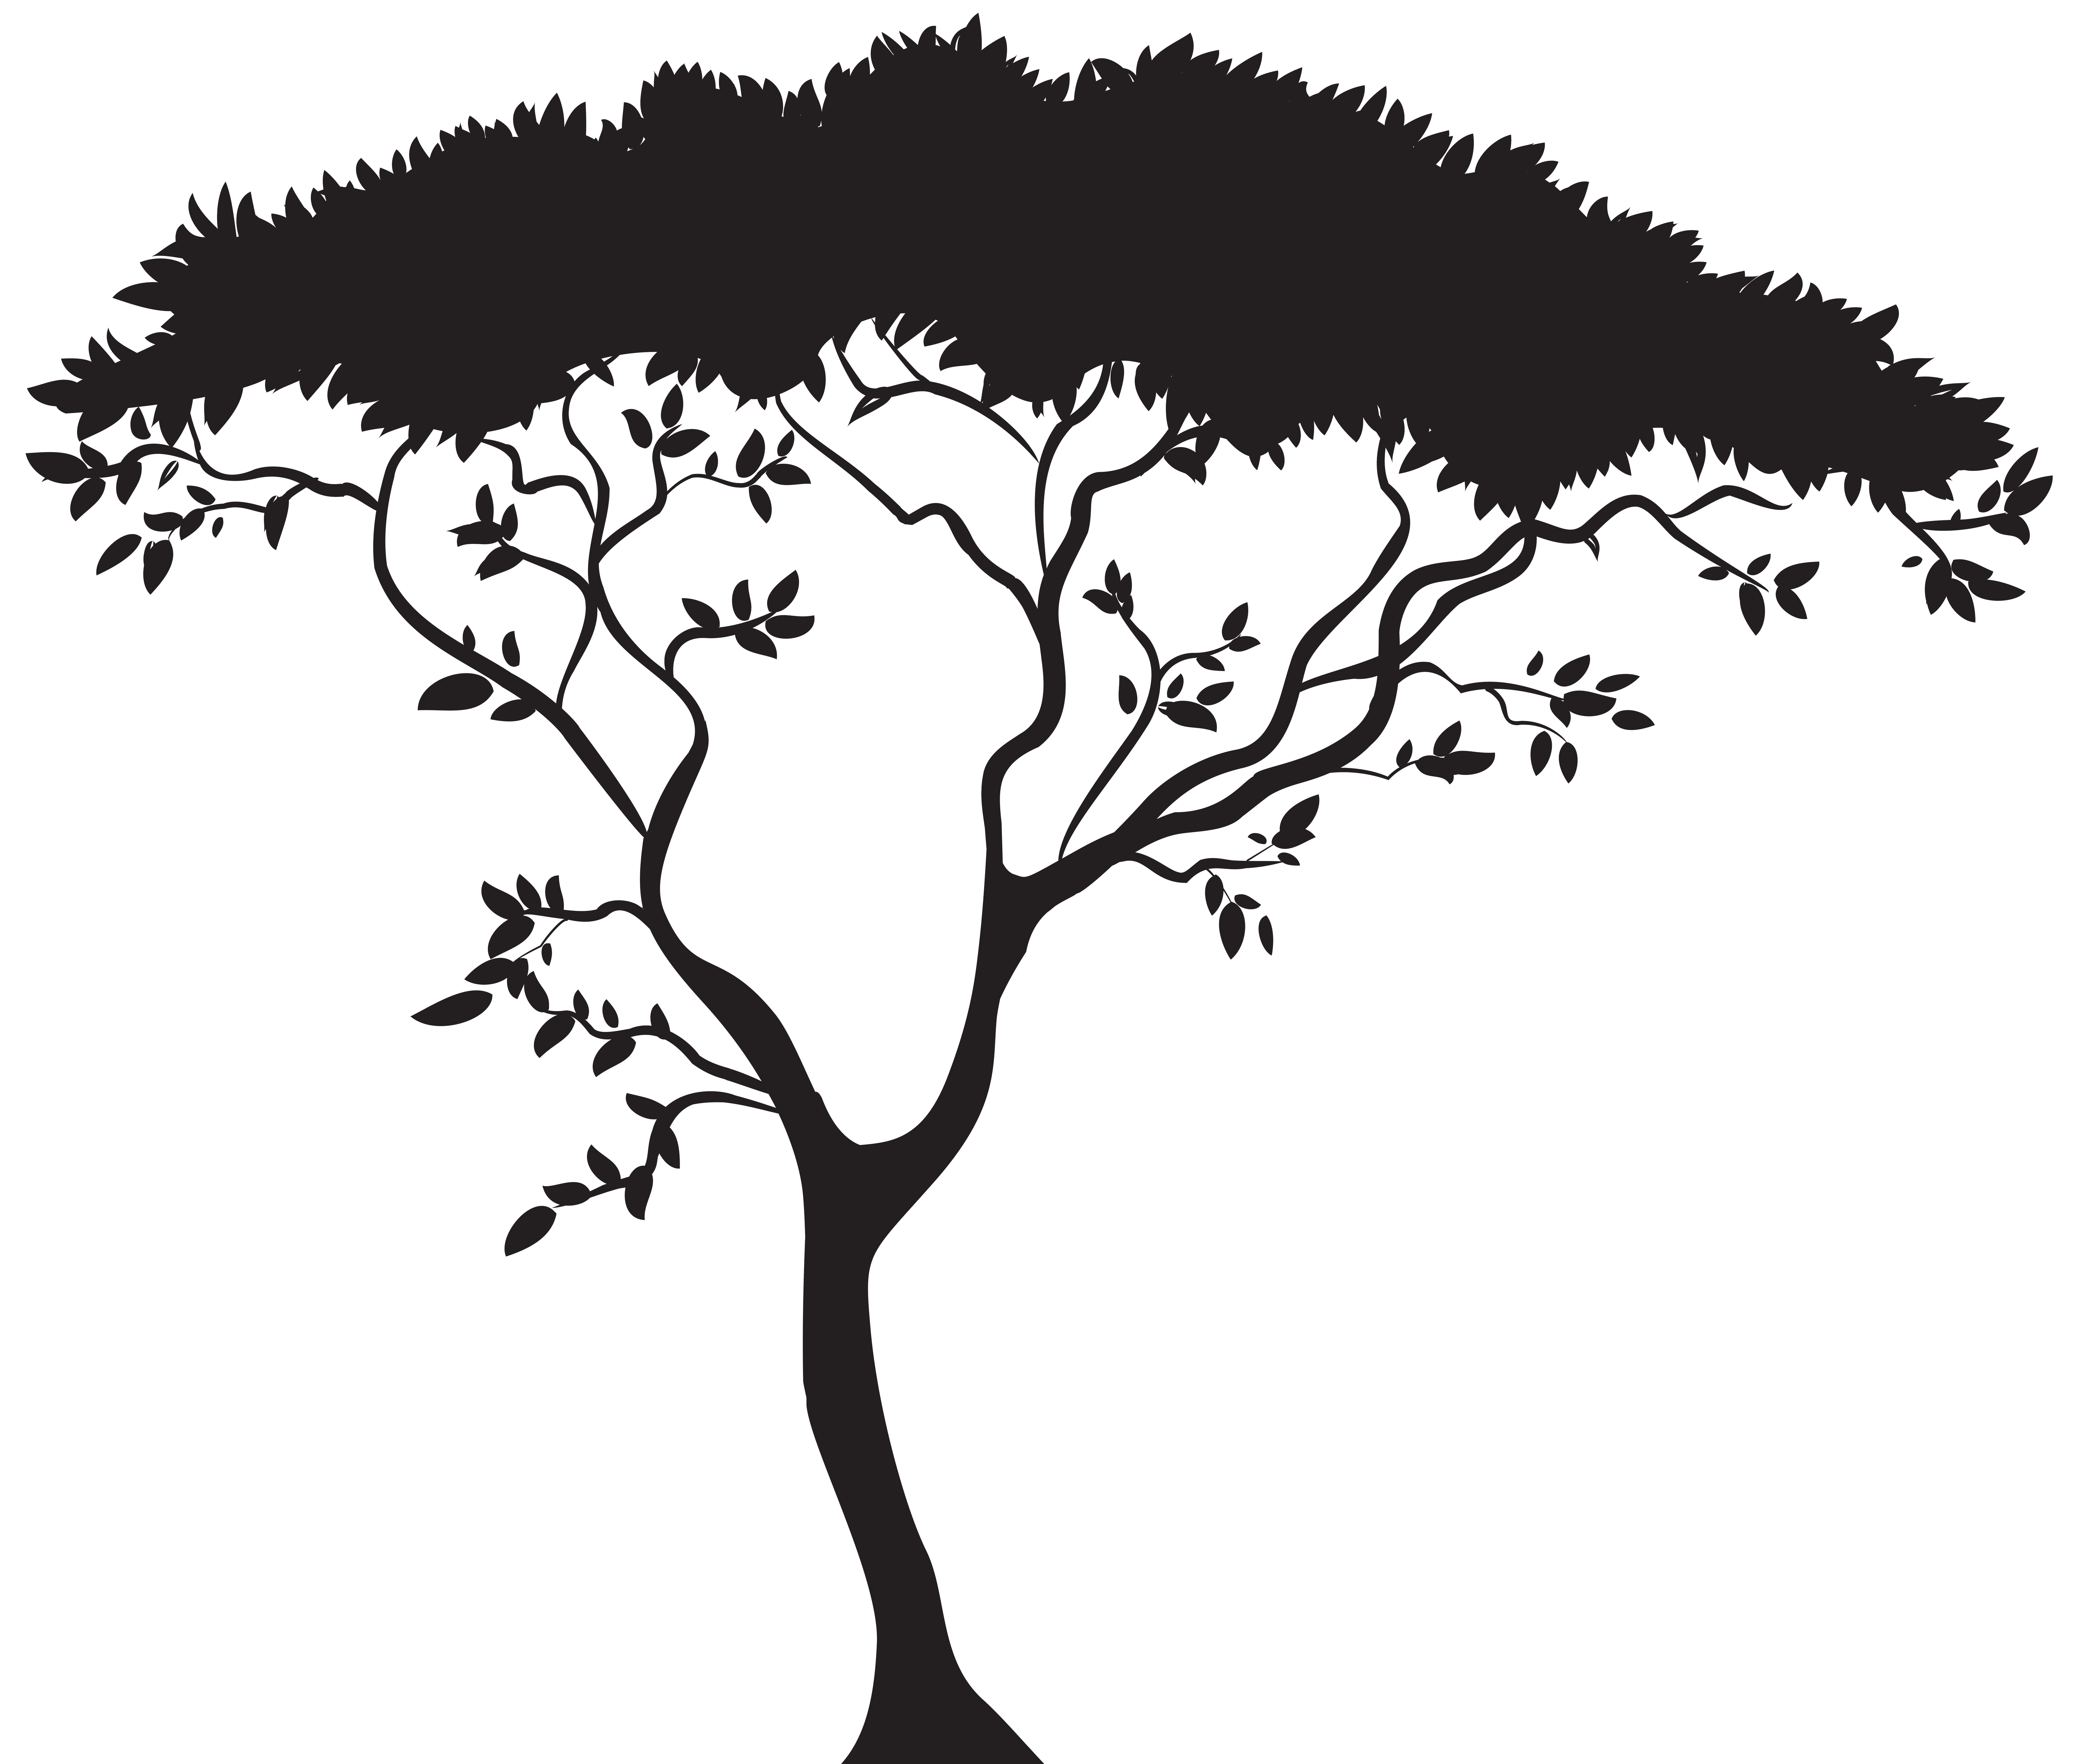 African Tree Silhouette Png.